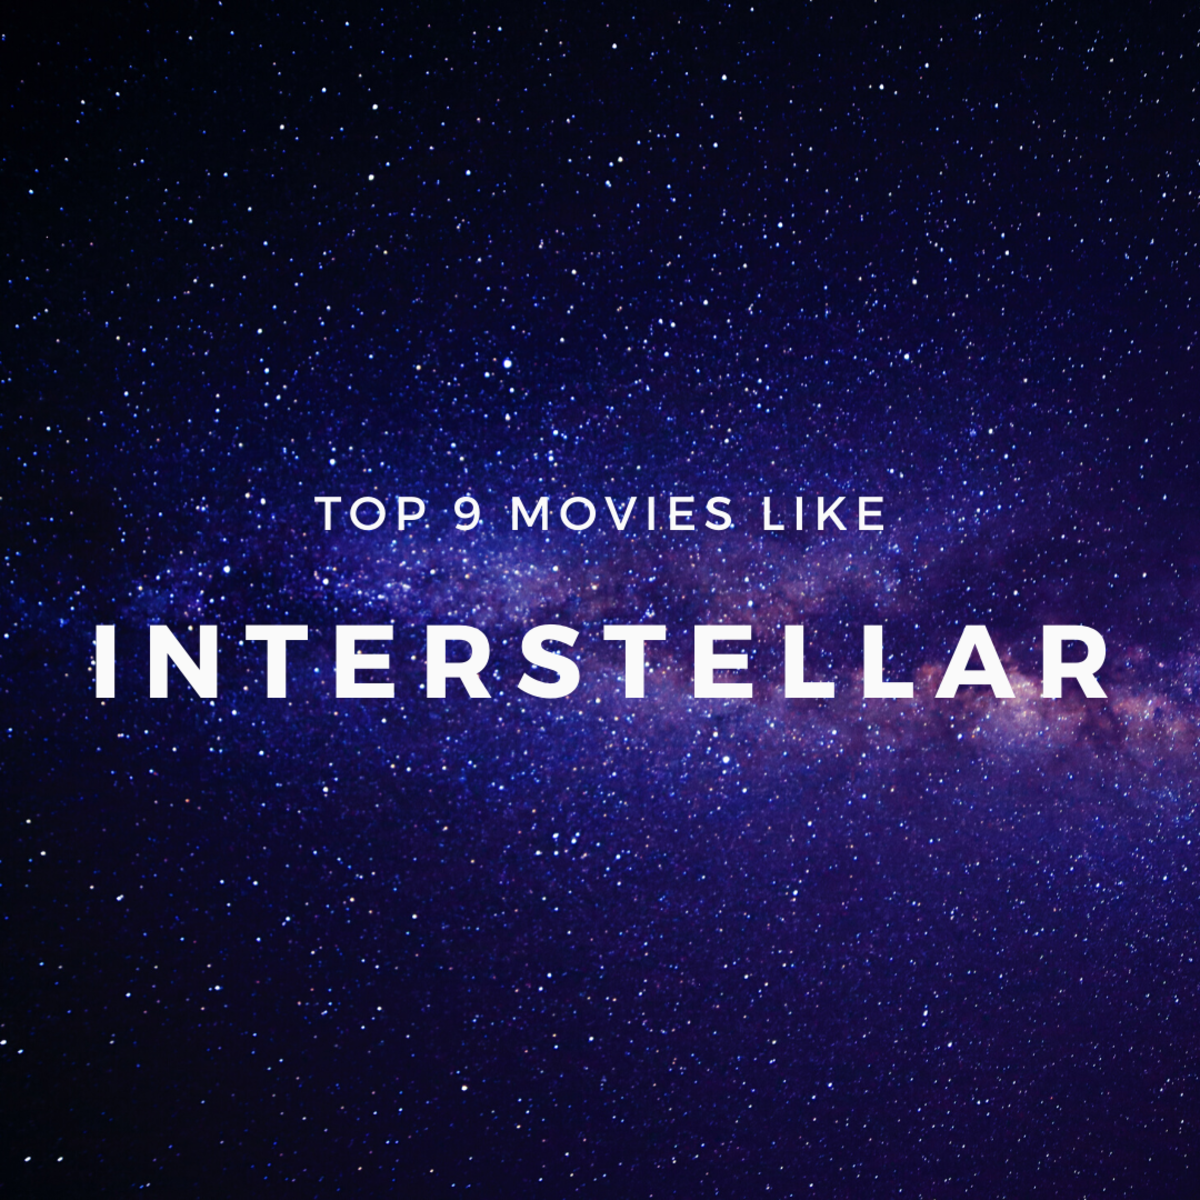 Read on for some films that are out of this world!